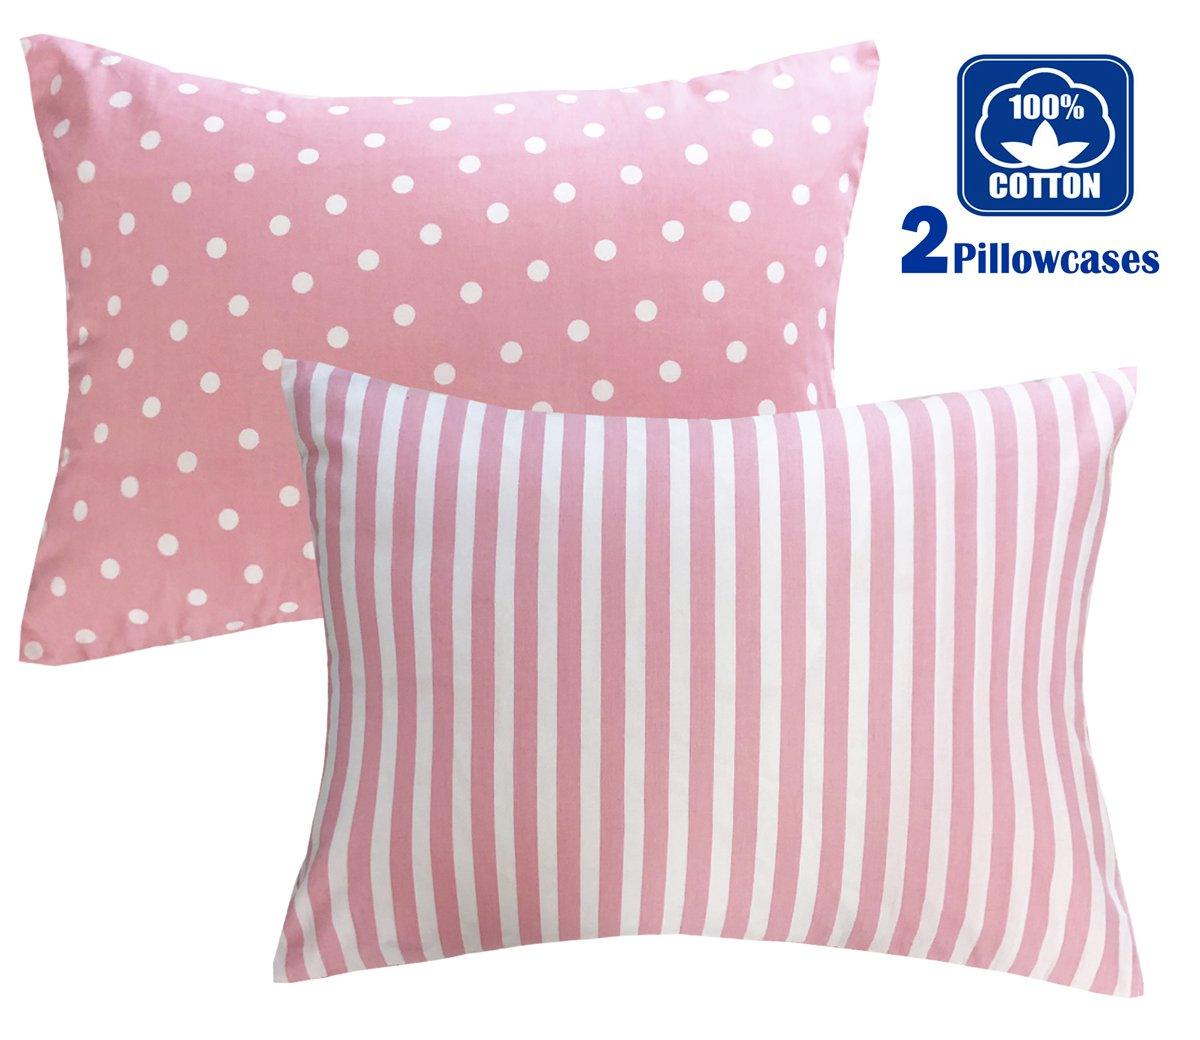 FUMAN 100% Organic Cotton Toddler Pillowcases Set of 2, Soft and Breathable, 13''x 18'', Pink